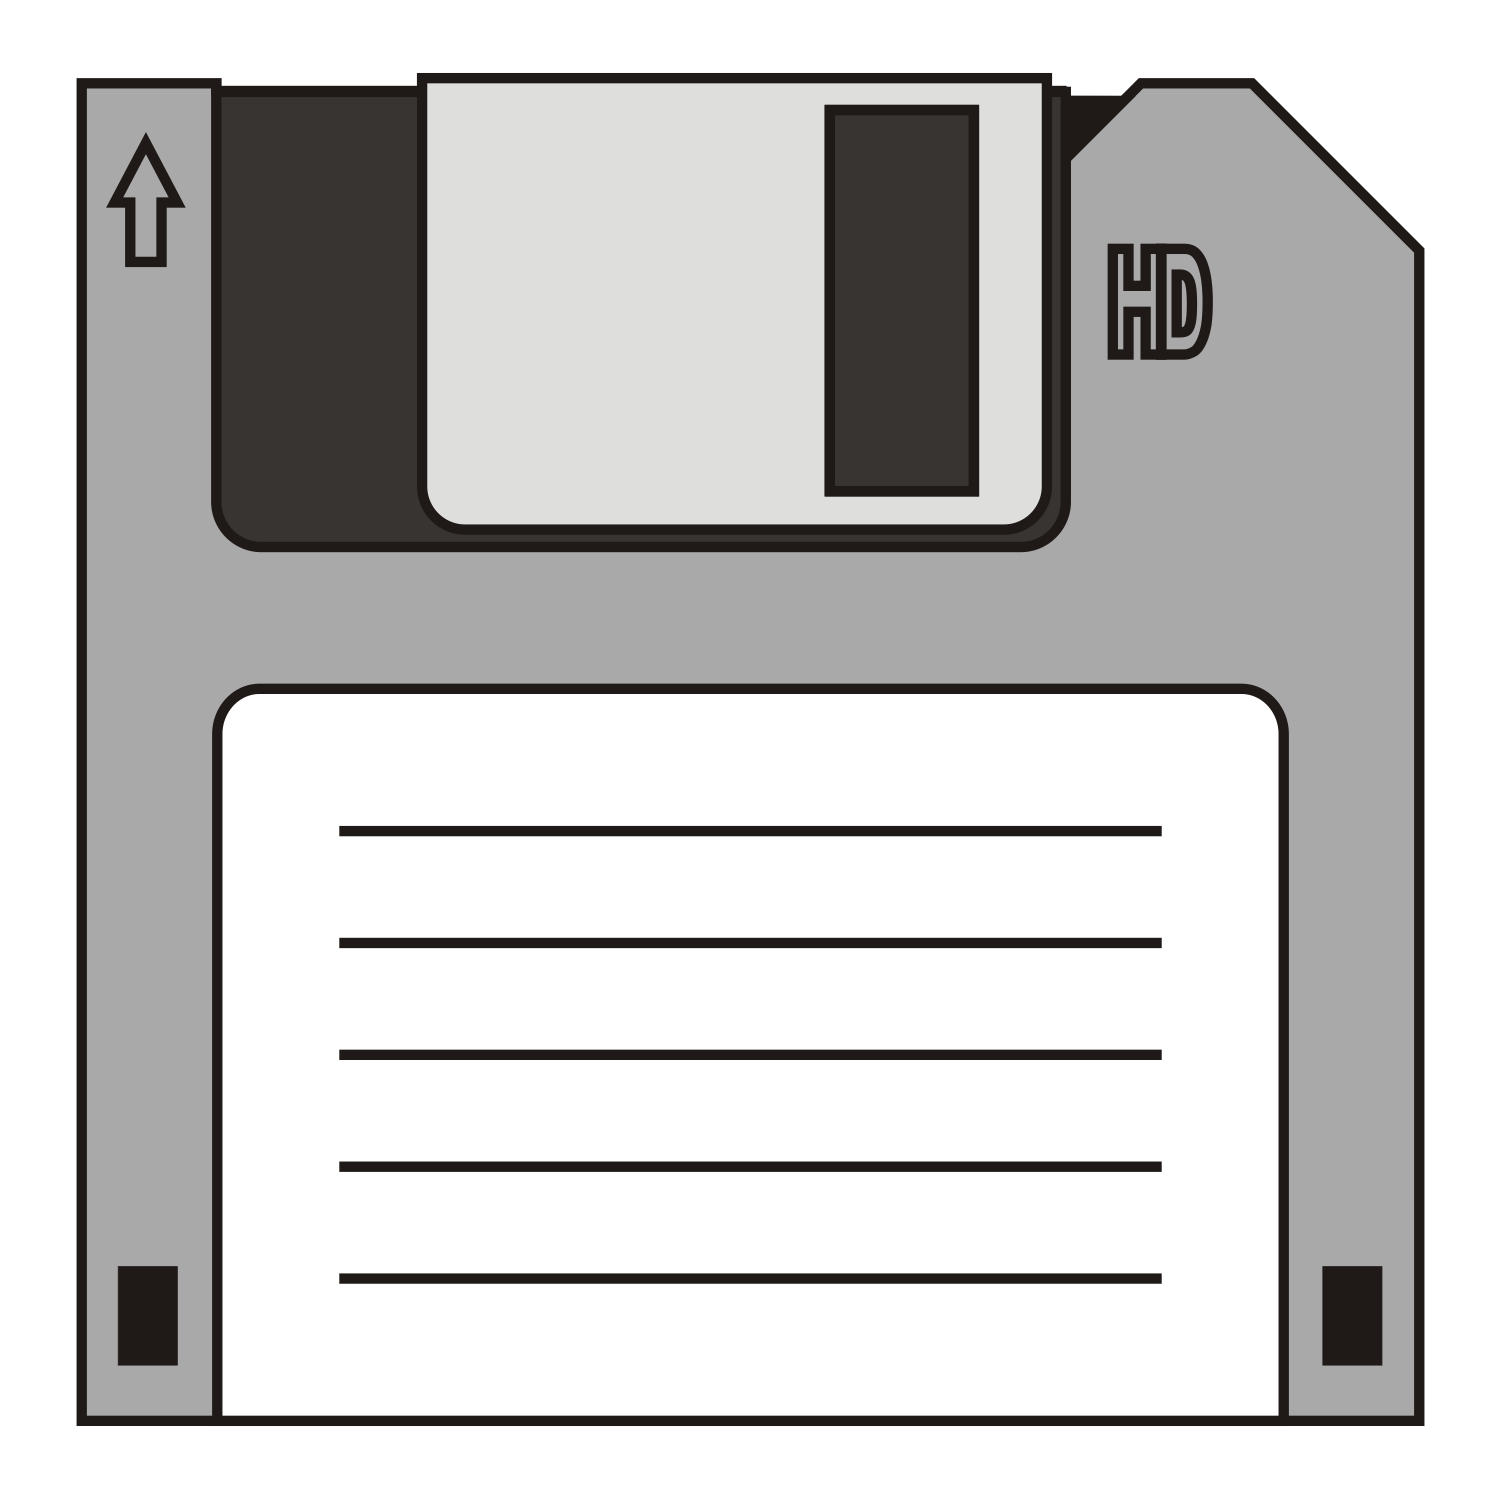 Floppy disk for reading or writing computer data